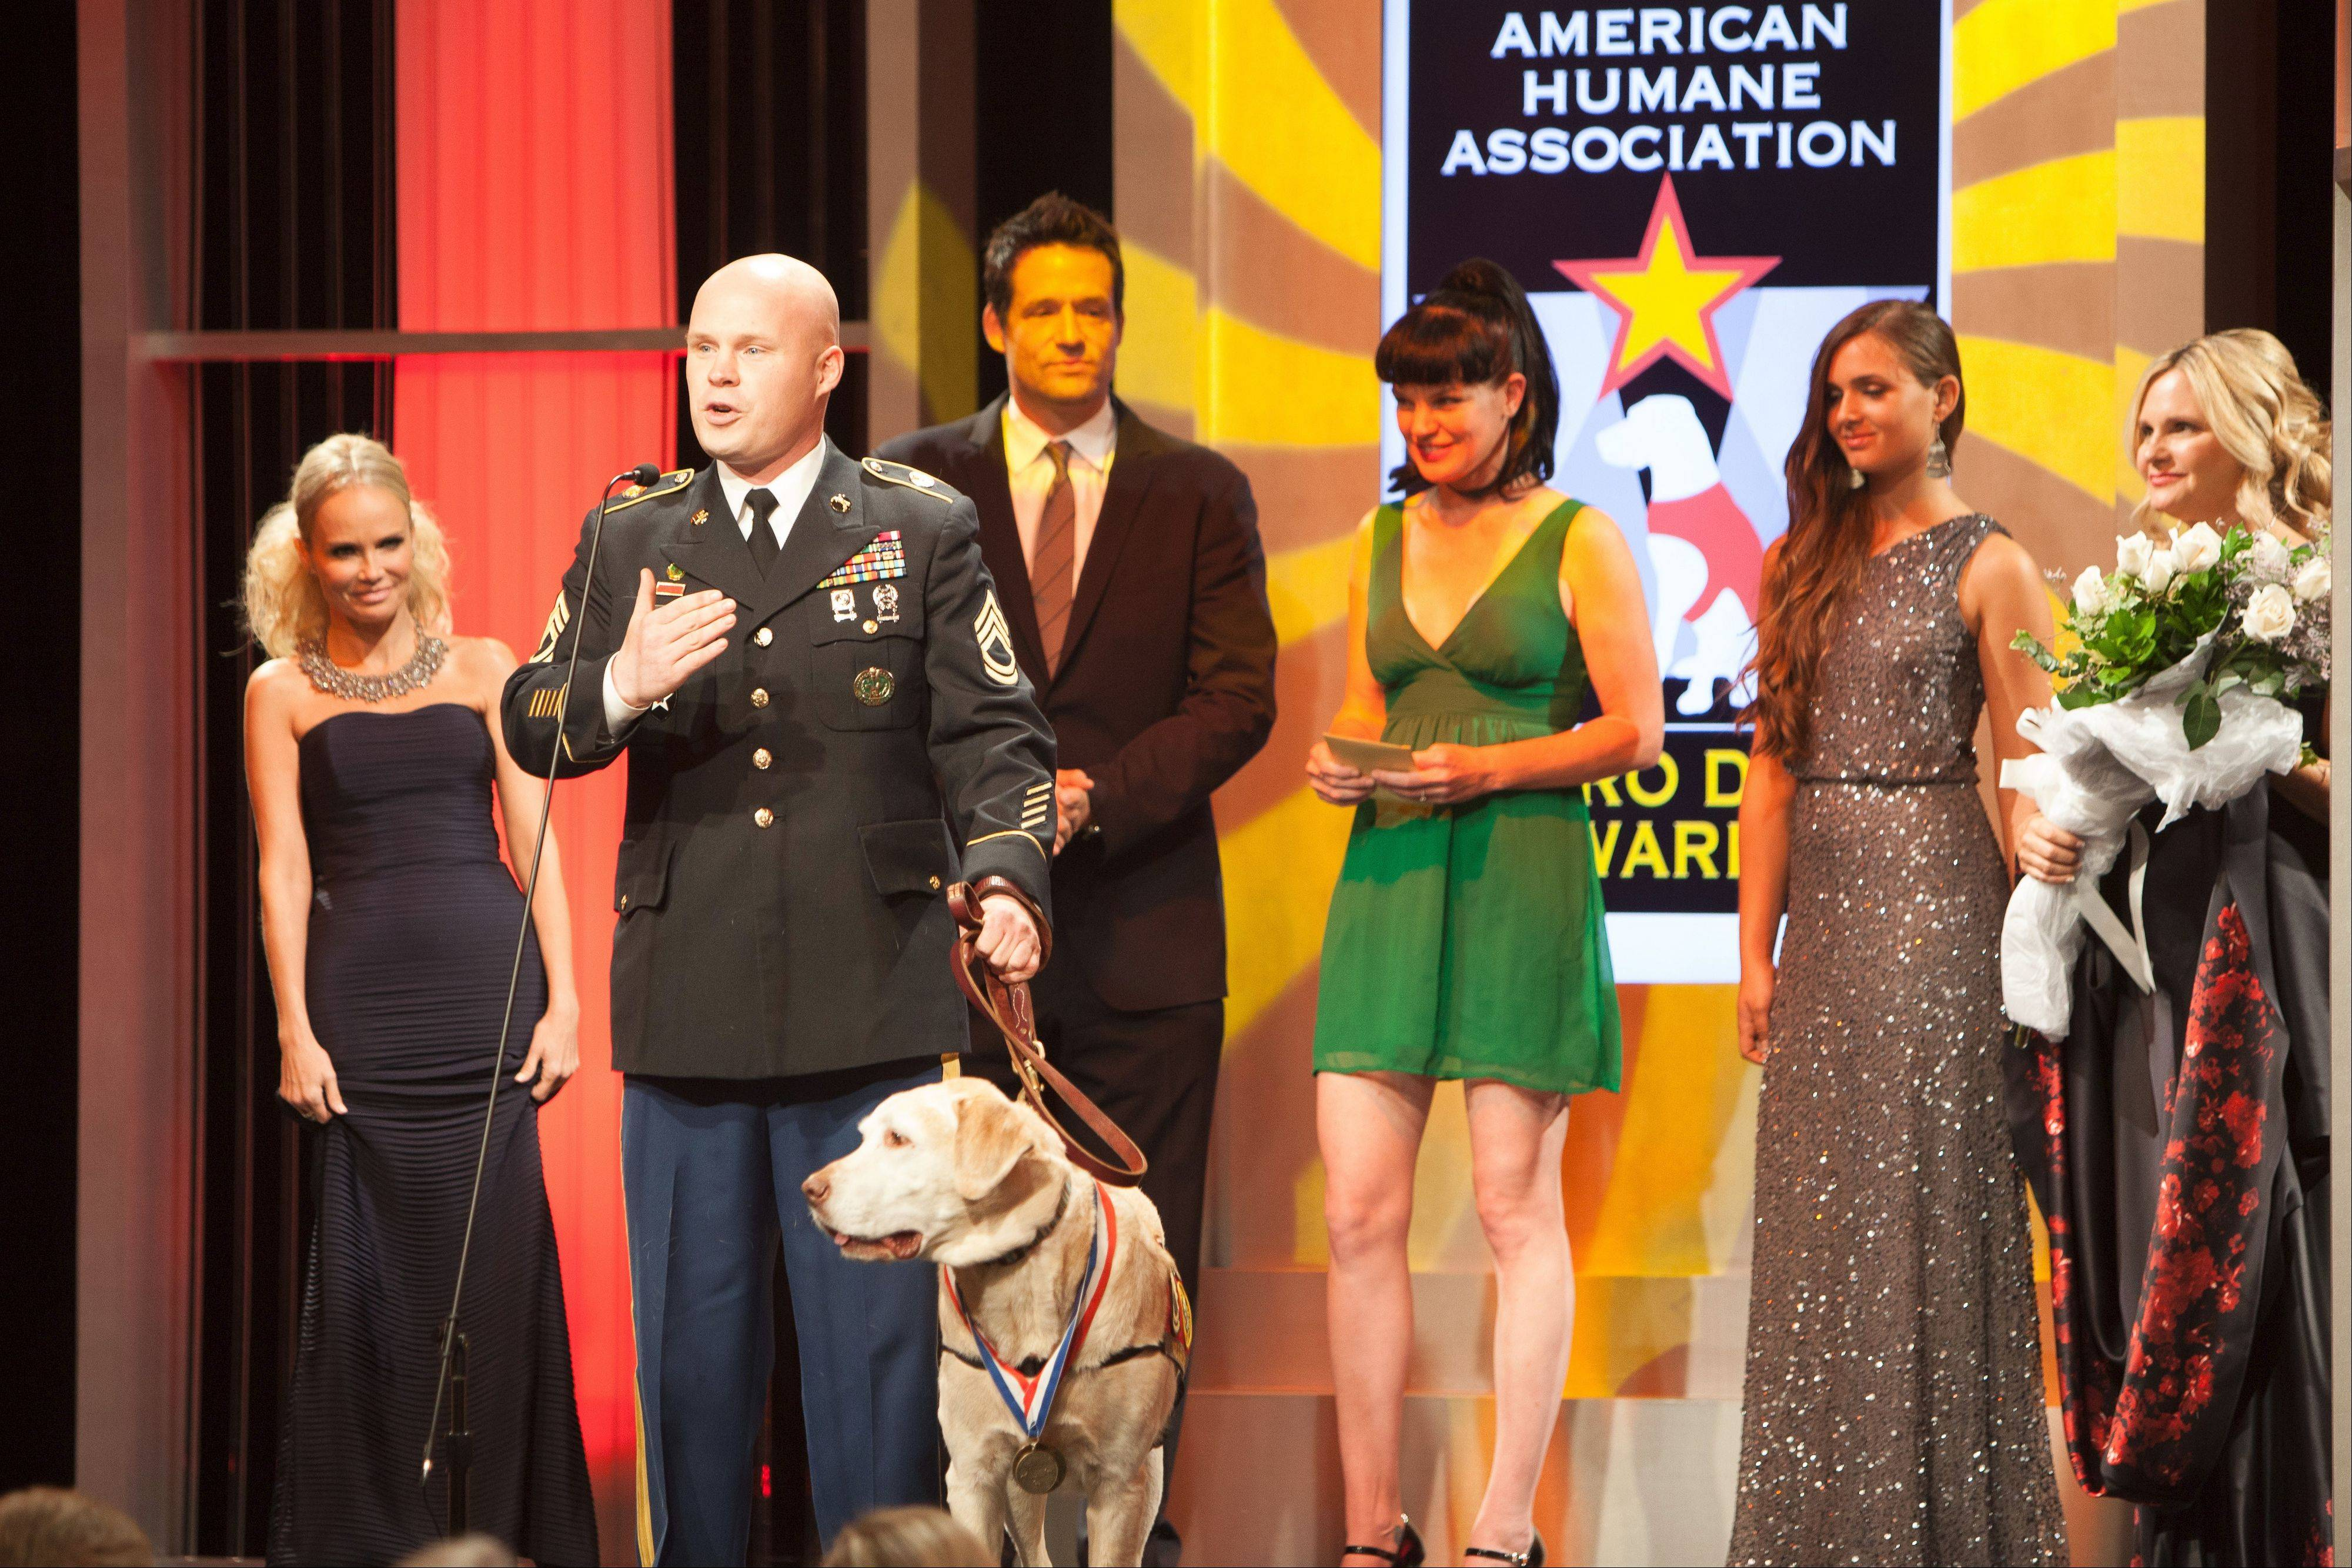 Sgt. 1st Class Charles Shuck's dog Gabe, a yellow Lab, was honored at the American Humane Association Hero Dog Awards, airing at 7 p.m. Thursday, Nov. 8, on Hallmark Channel.